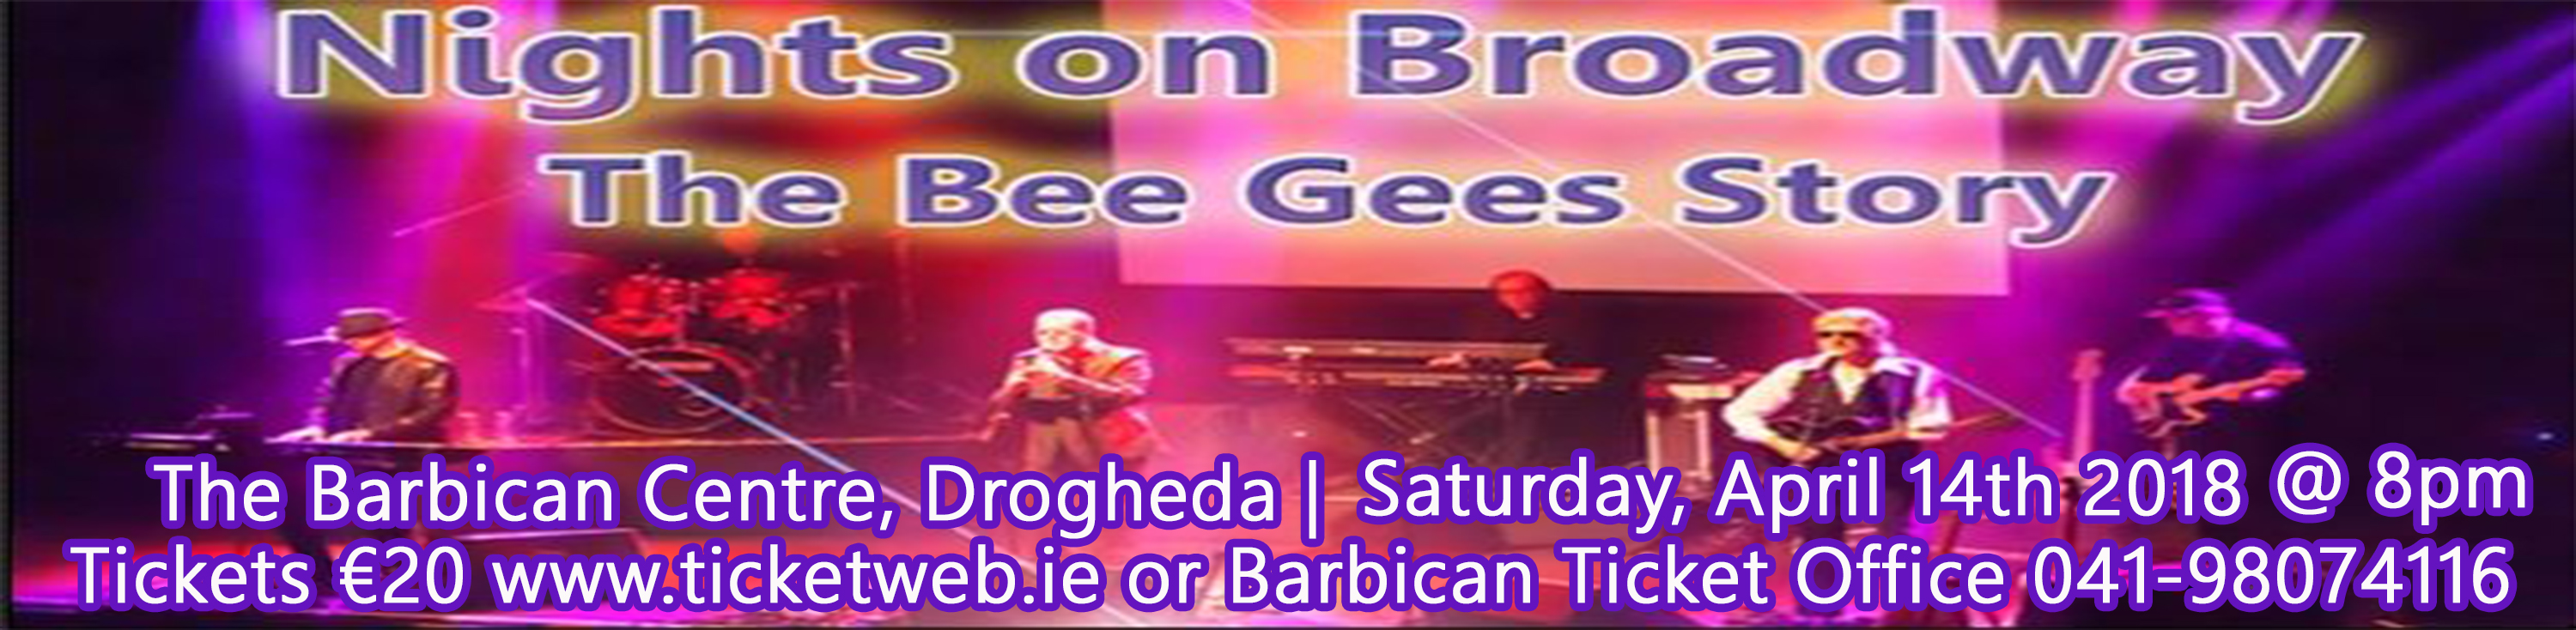 https://www.ticketweb.ie/event/the-bee-gees-story-the-barbican-centre-tickets/8182095